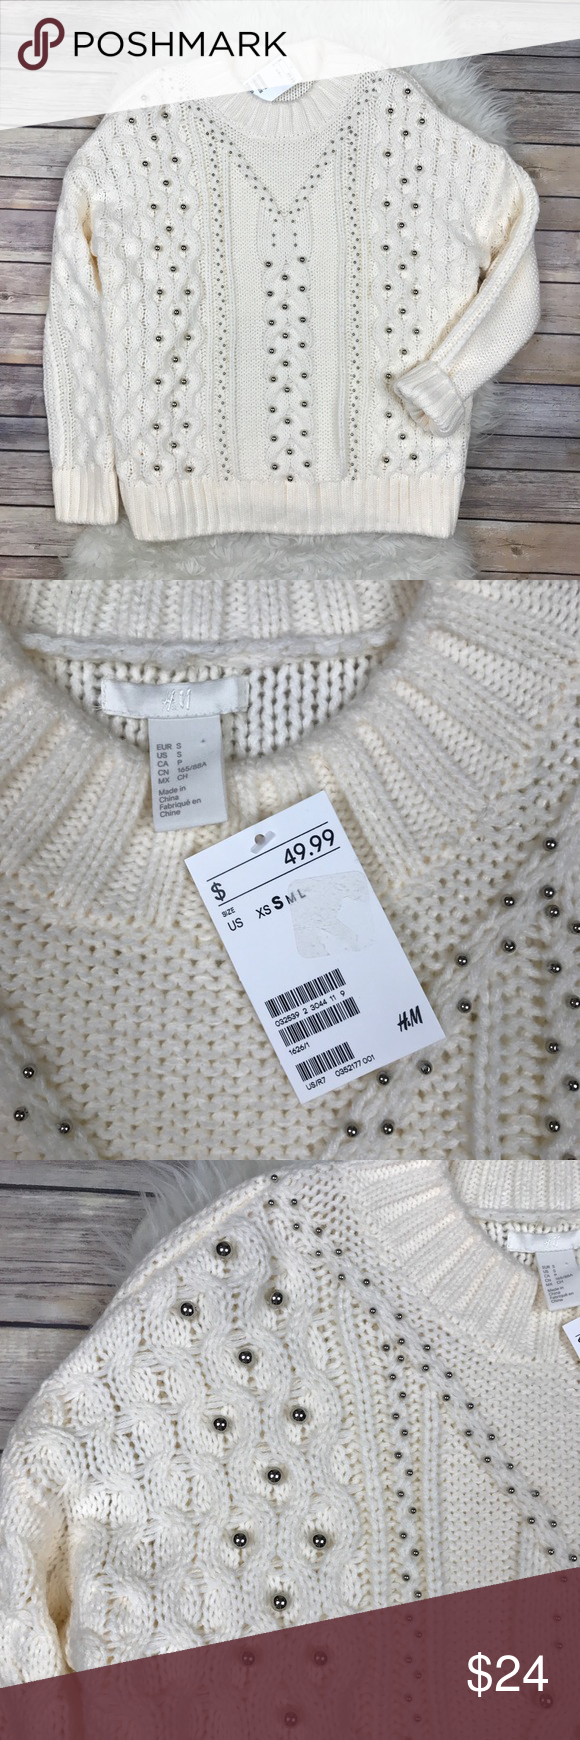 ad8cbbc219e45 H M Beaded Cable-Knit Oversized Sweater New with tags H M Oversized Silver  Beaded Sweater. Size Small. 100% acrylic. Bust 54